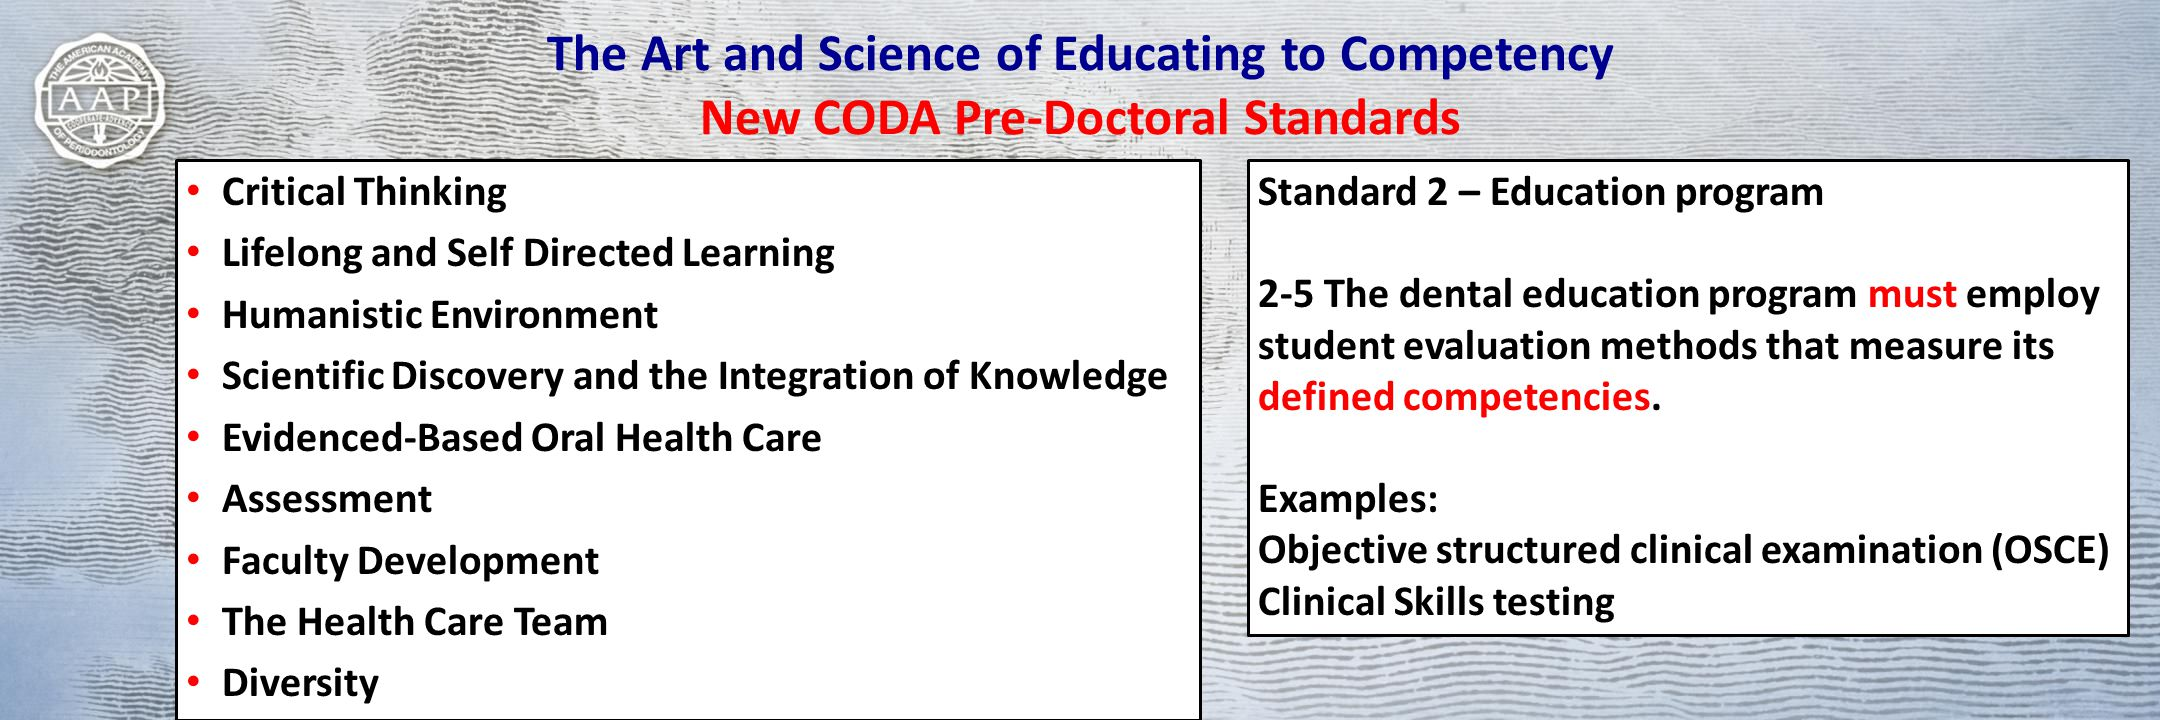 The Art and Science of Educating to Competency New CODA Pre-Doctoral Standards Critical Thinking Lifelong and Self Directed Learning Humanistic Environment Scientific Discovery and the Integration of Knowledge Evidenced-Based Oral Health Care Assessment Faculty Development The Health Care Team Diversity Standard 2 – Education program 2-5 The dental education program must employ student evaluation methods that measure its defined competencies.